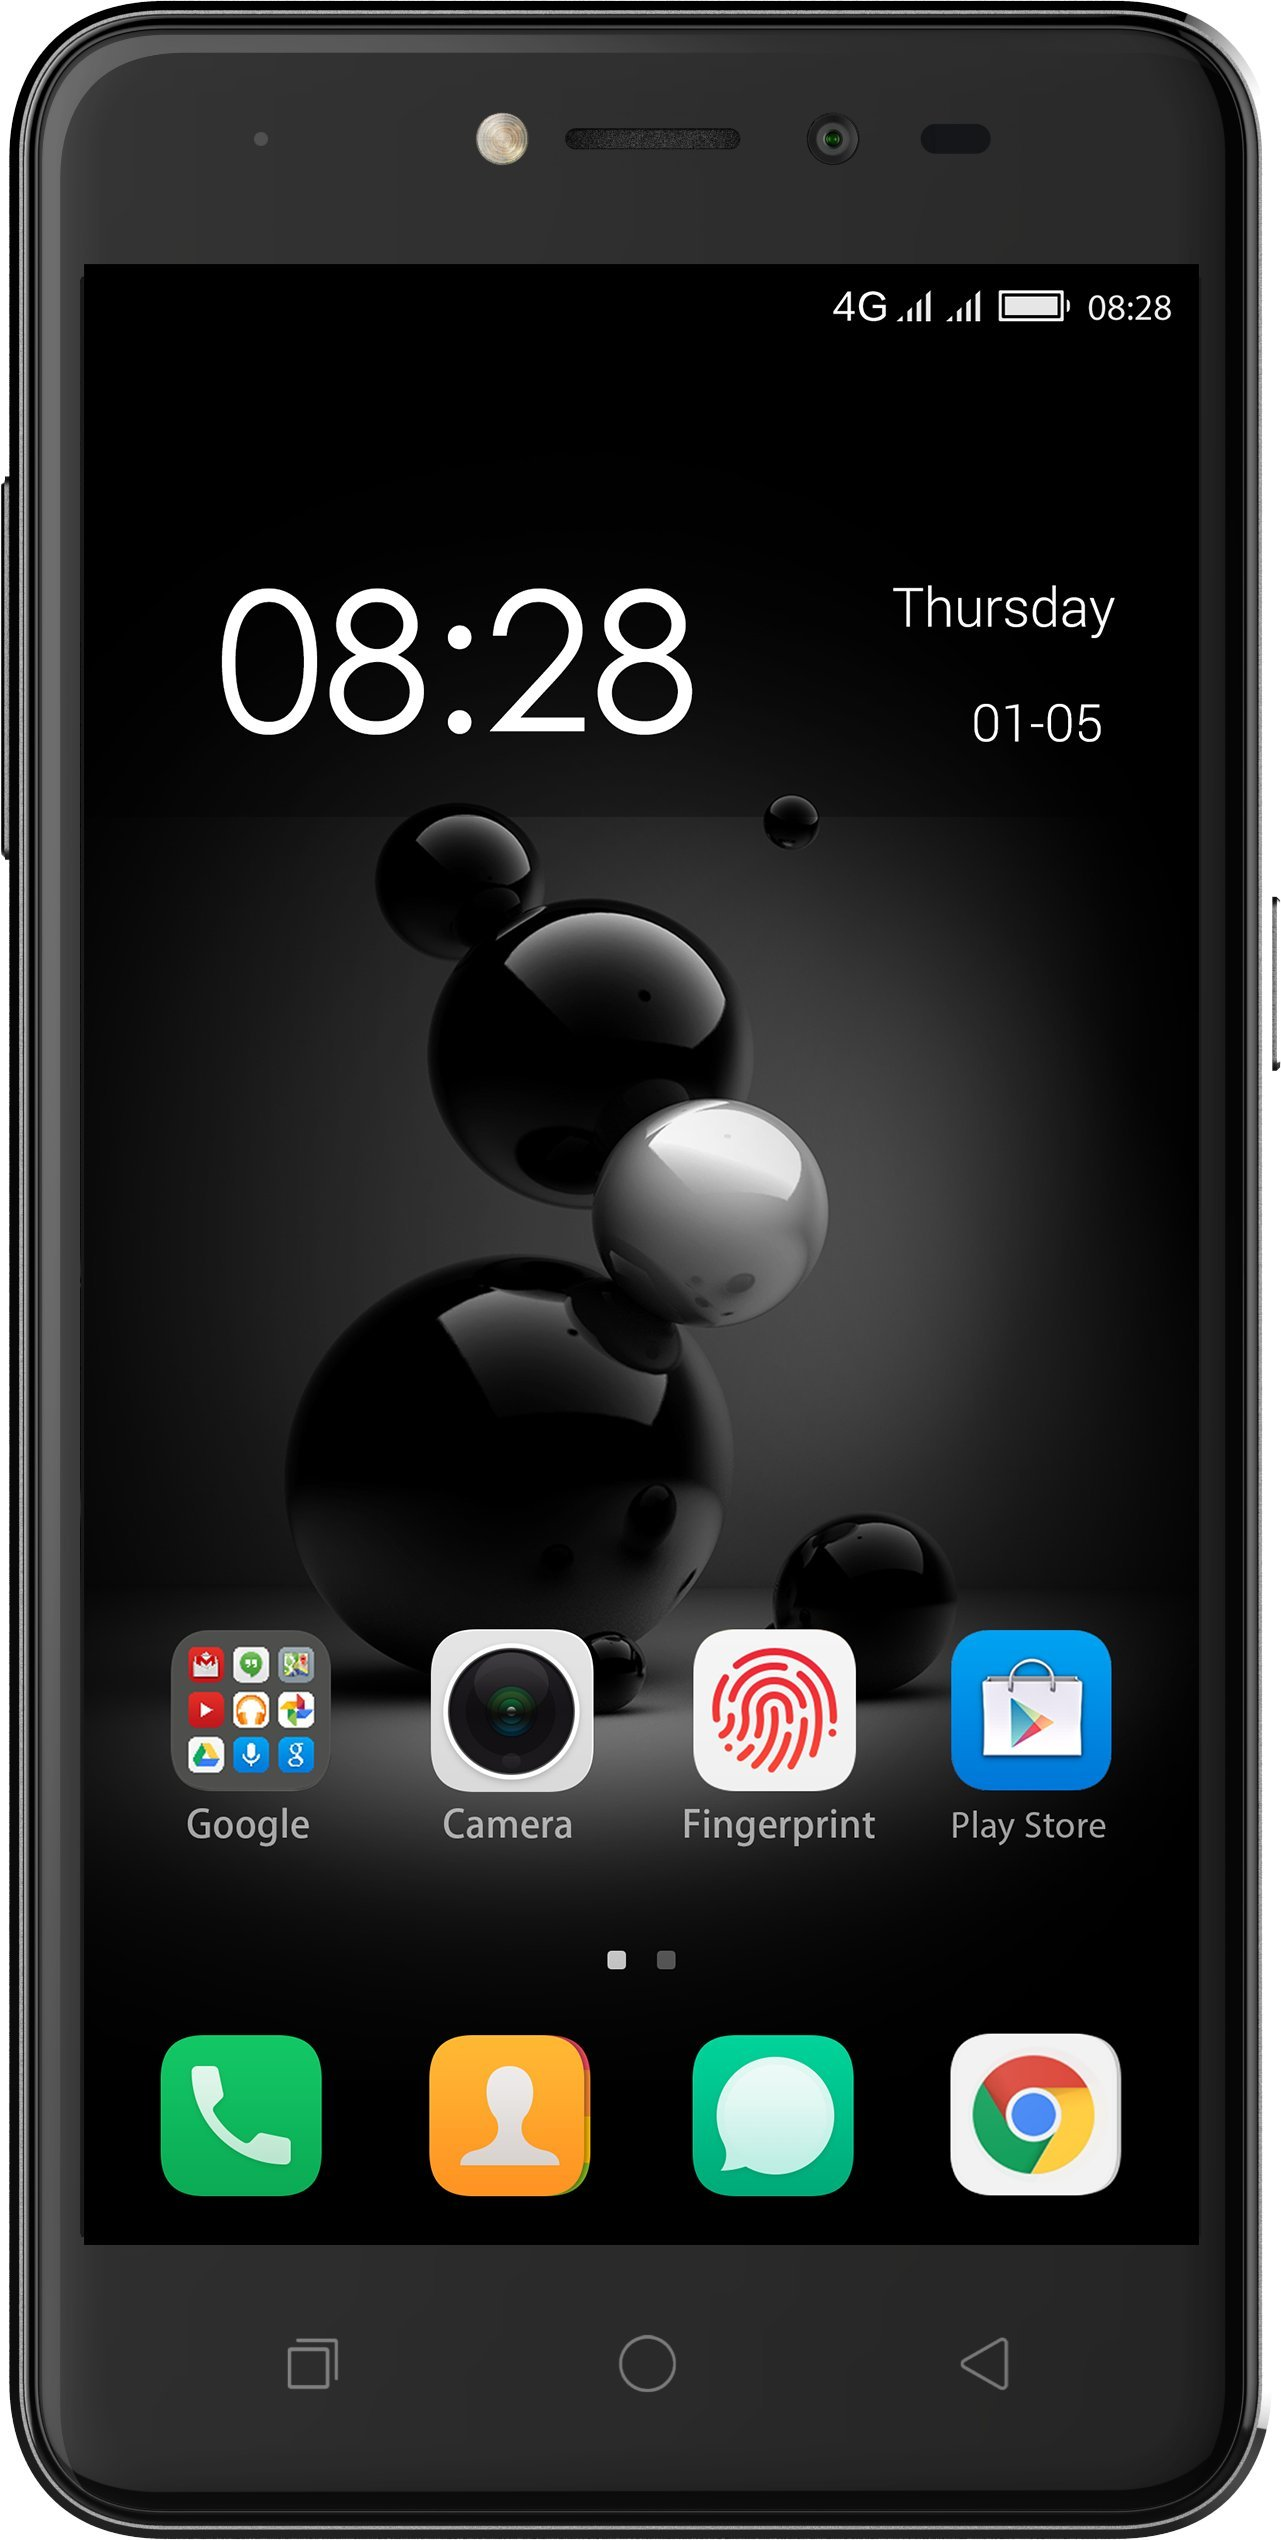 Coolpad Conjr – Unlocked Smartphone, Dual Sim, Multi-Finger Unlock, 4G LTE – Iron Grey by Coolpad